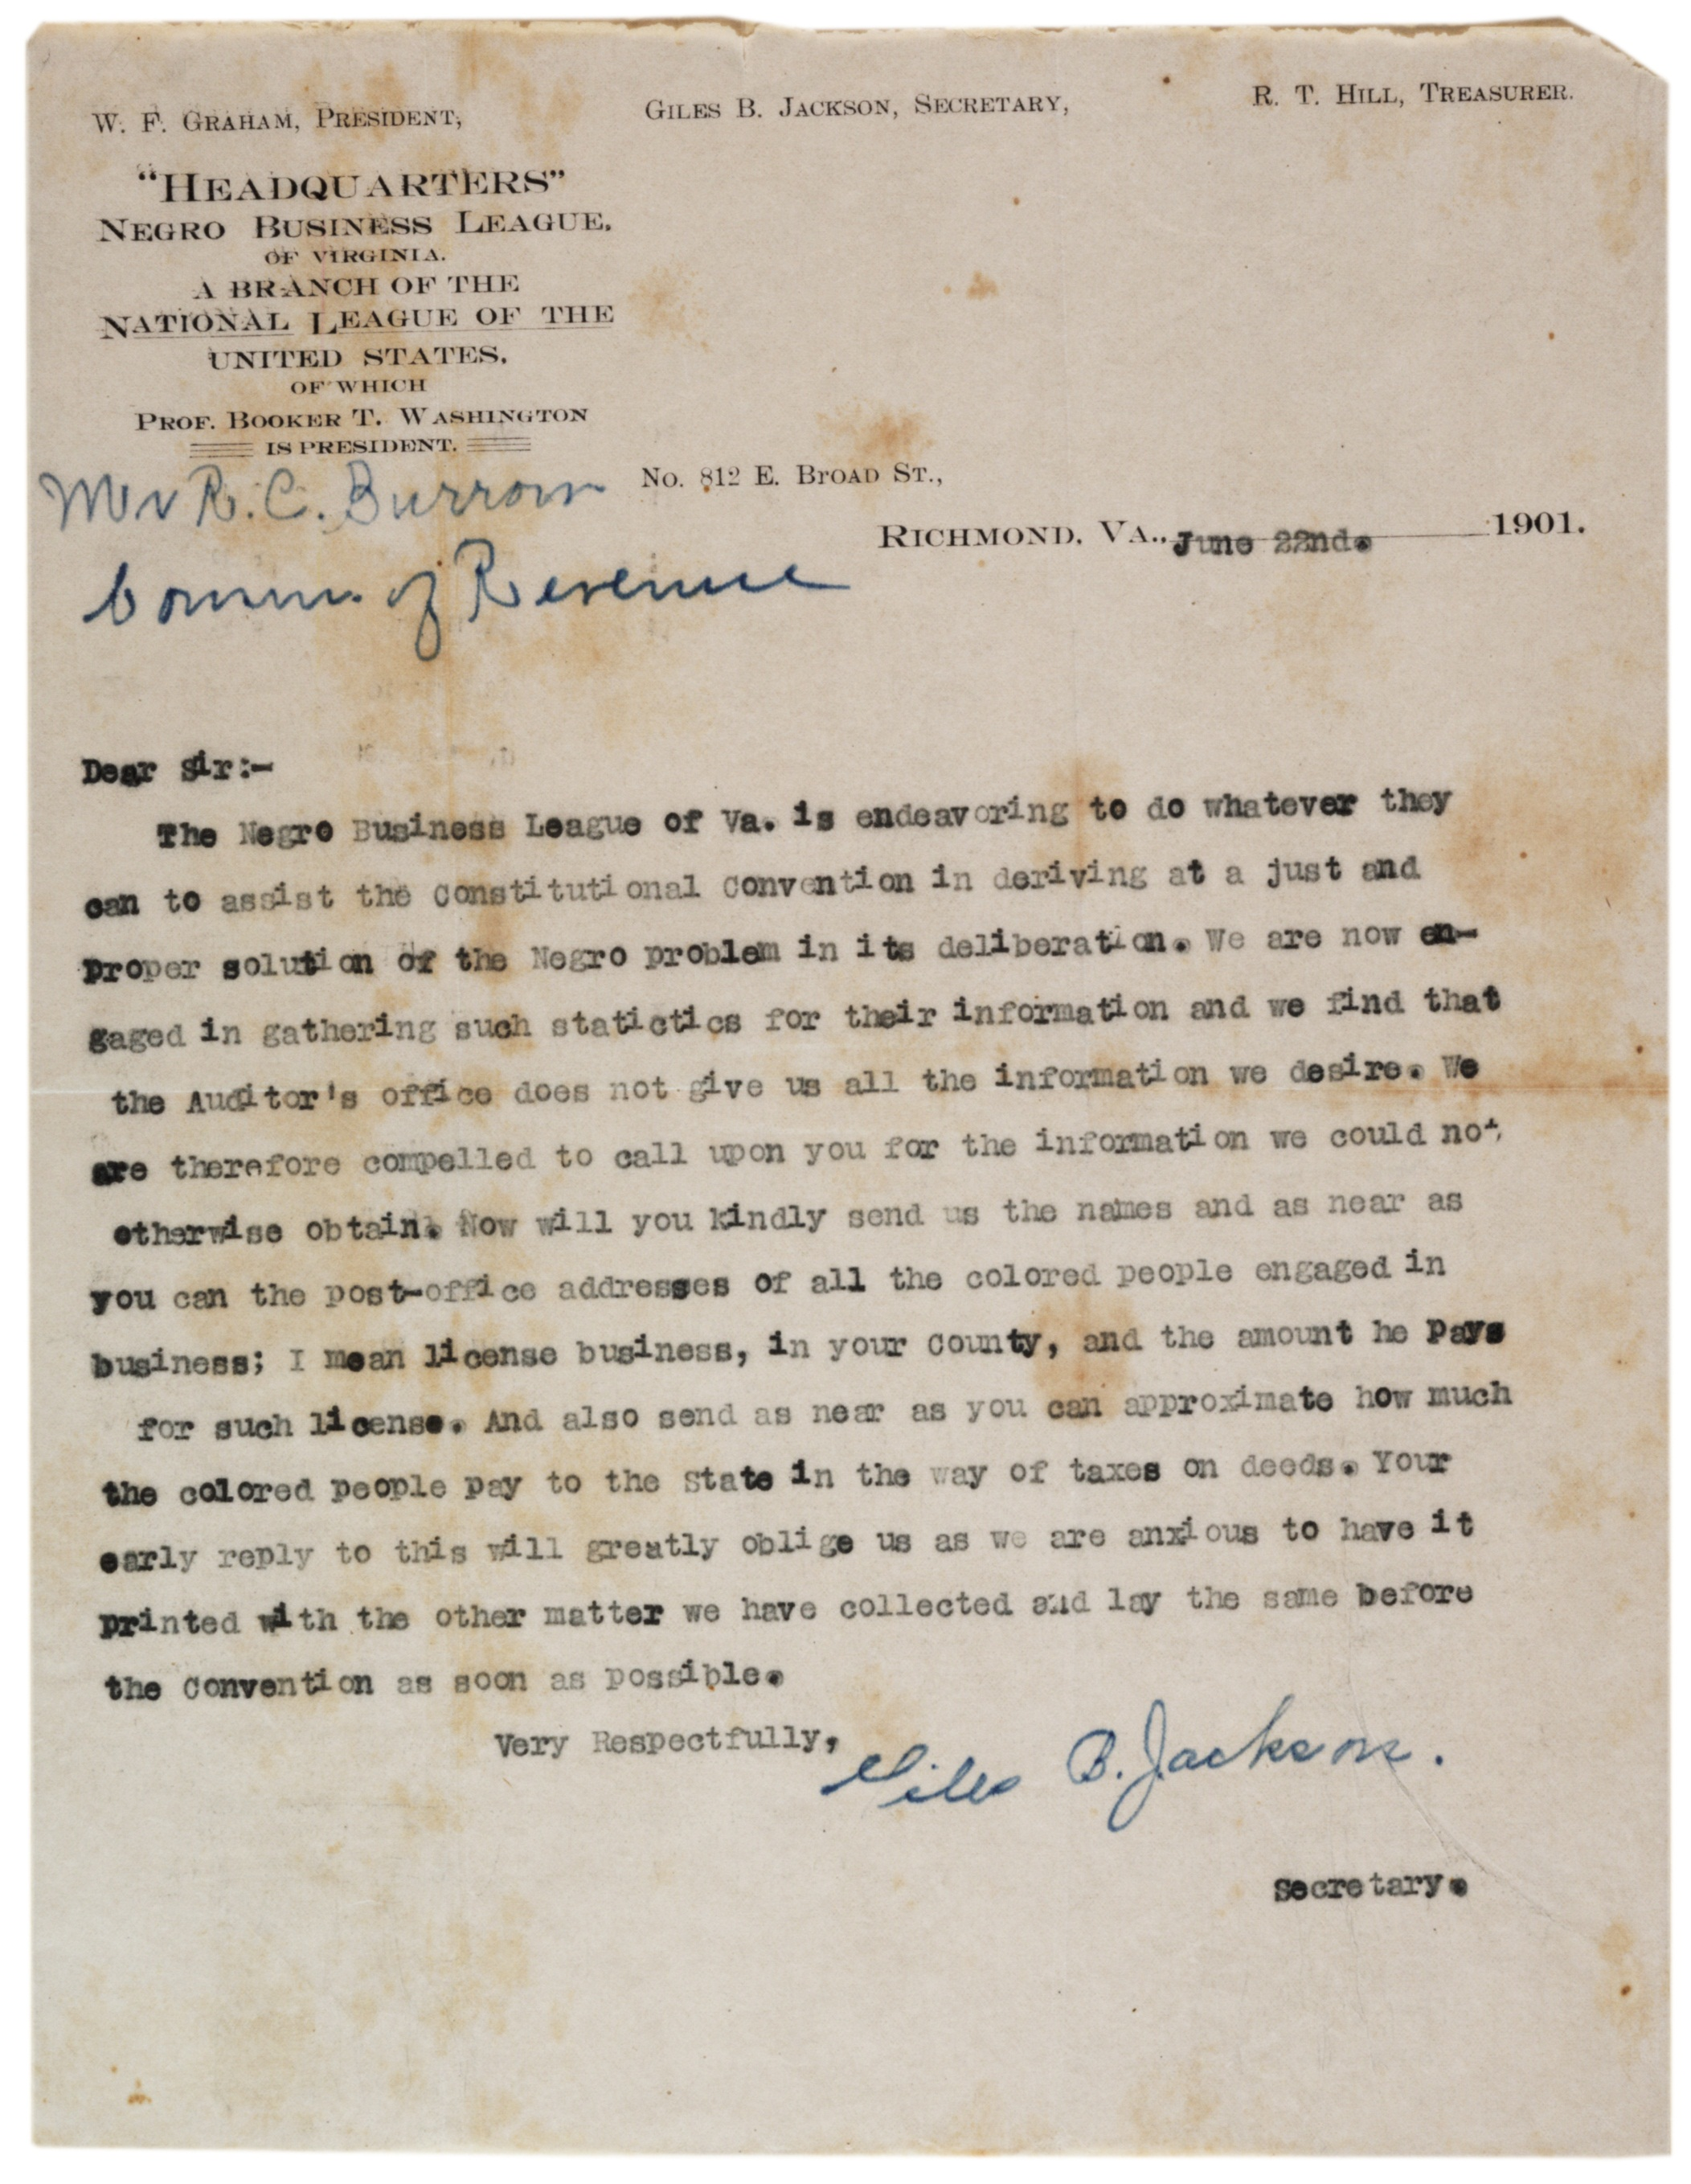 Giles B. Jackson to R.C. Burrow, June 22, 1901. (Gilder Lehrman Collection)